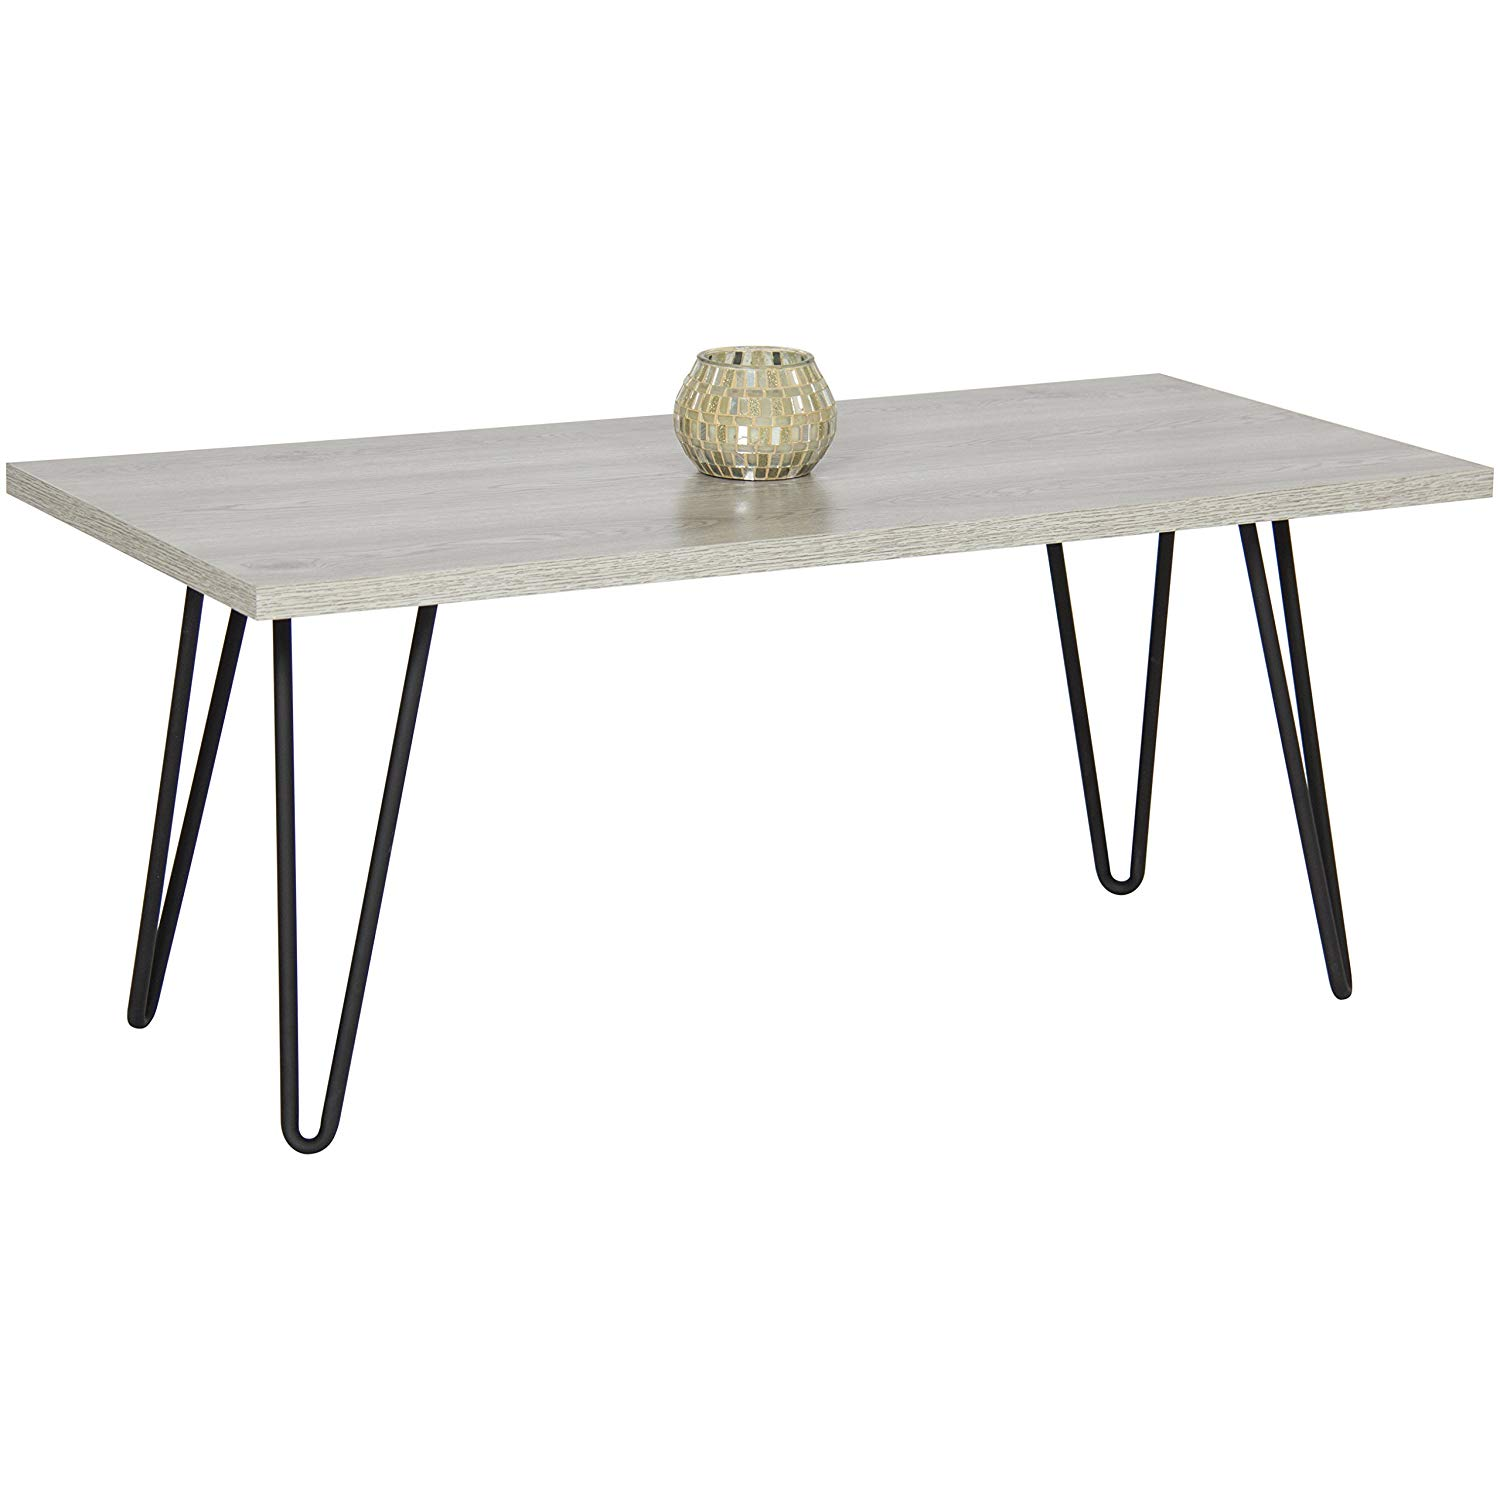 best choice products coffee table metal hairpin legs round accent with screw home kitchen gray contemporary couches under white lamp gresham furniture all modern lamps green black